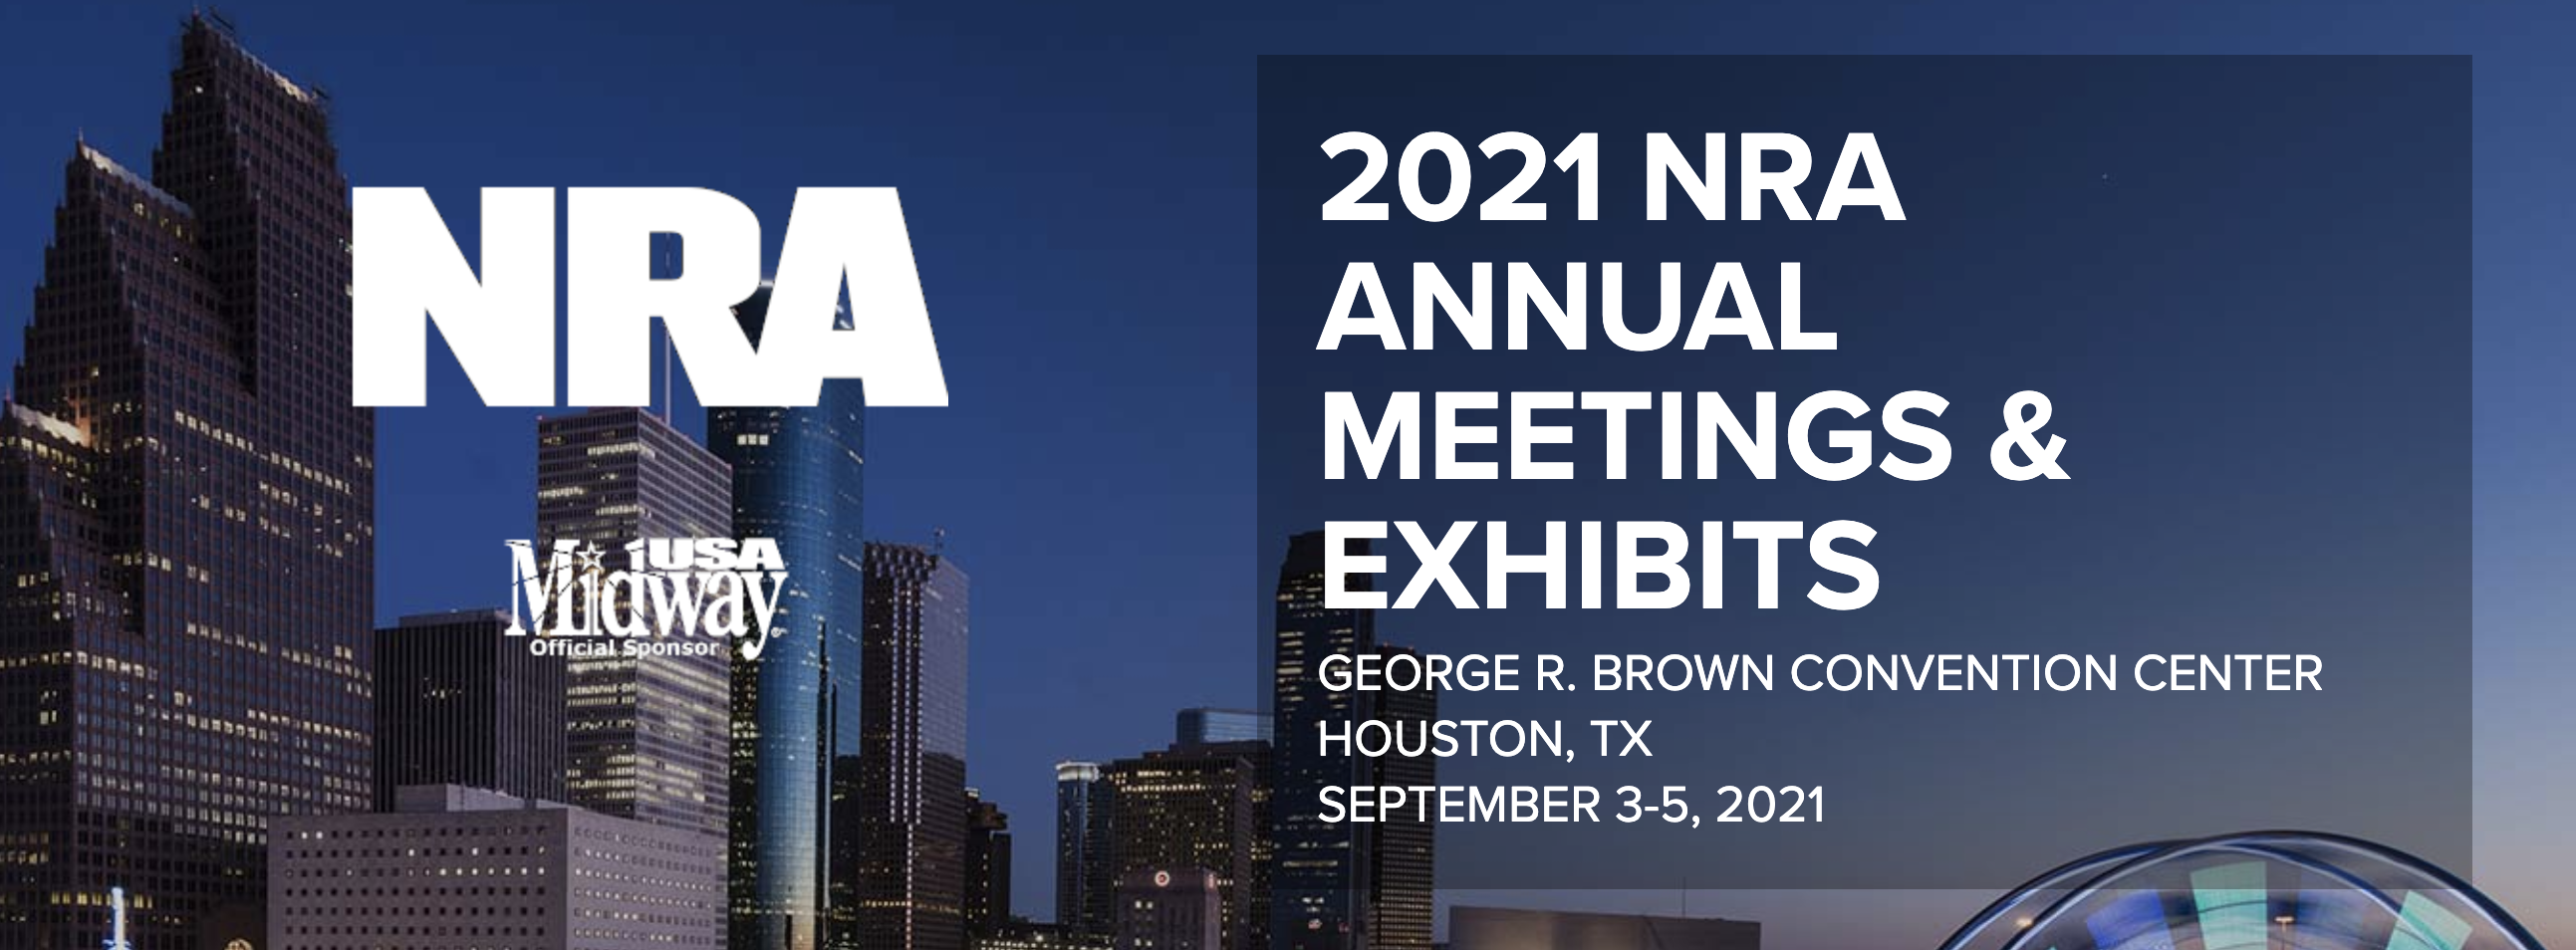 2021 NRA ANNUAL MEETINGS & EXHIBITS